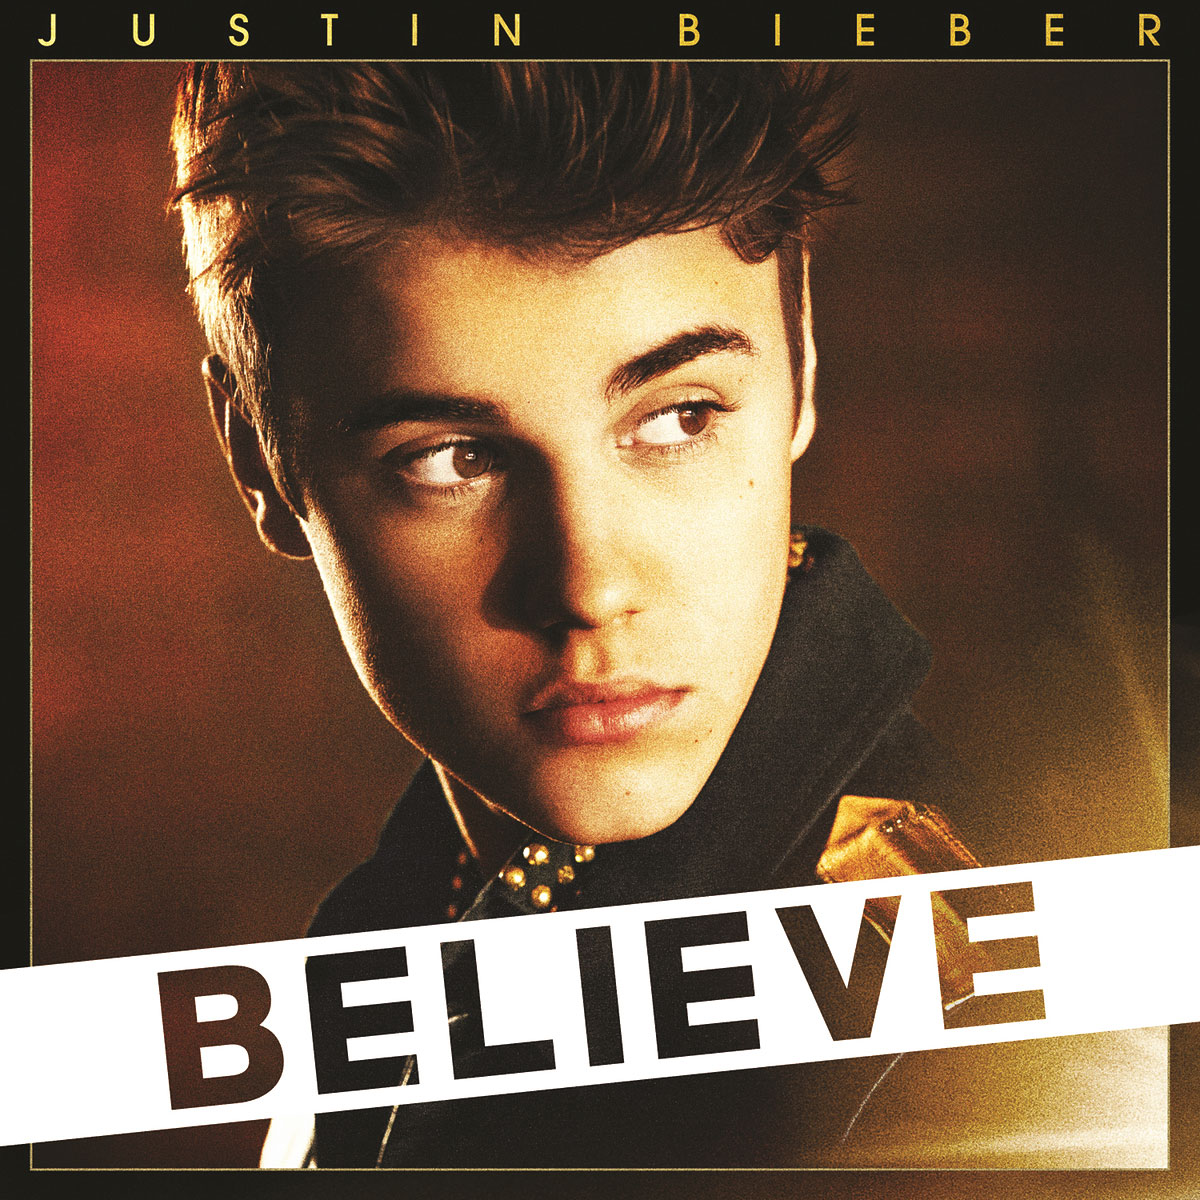 """Justin Bieber Through The Years Believe - Bieber's third album, Believe , which also debuted at No. 1 on the Billboard 200, marked a departure from his teen pop sound with more dance and R&B sounds. He released five singles: """"Boyfriend,"""" """"As Long as You Love Me"""" featuring Big Sean , """"Beauty and a Beat"""" featuring Nicki Minaj , """"Right Here"""" featuring Drake and """"All Around the World"""" featuring Ludacris."""